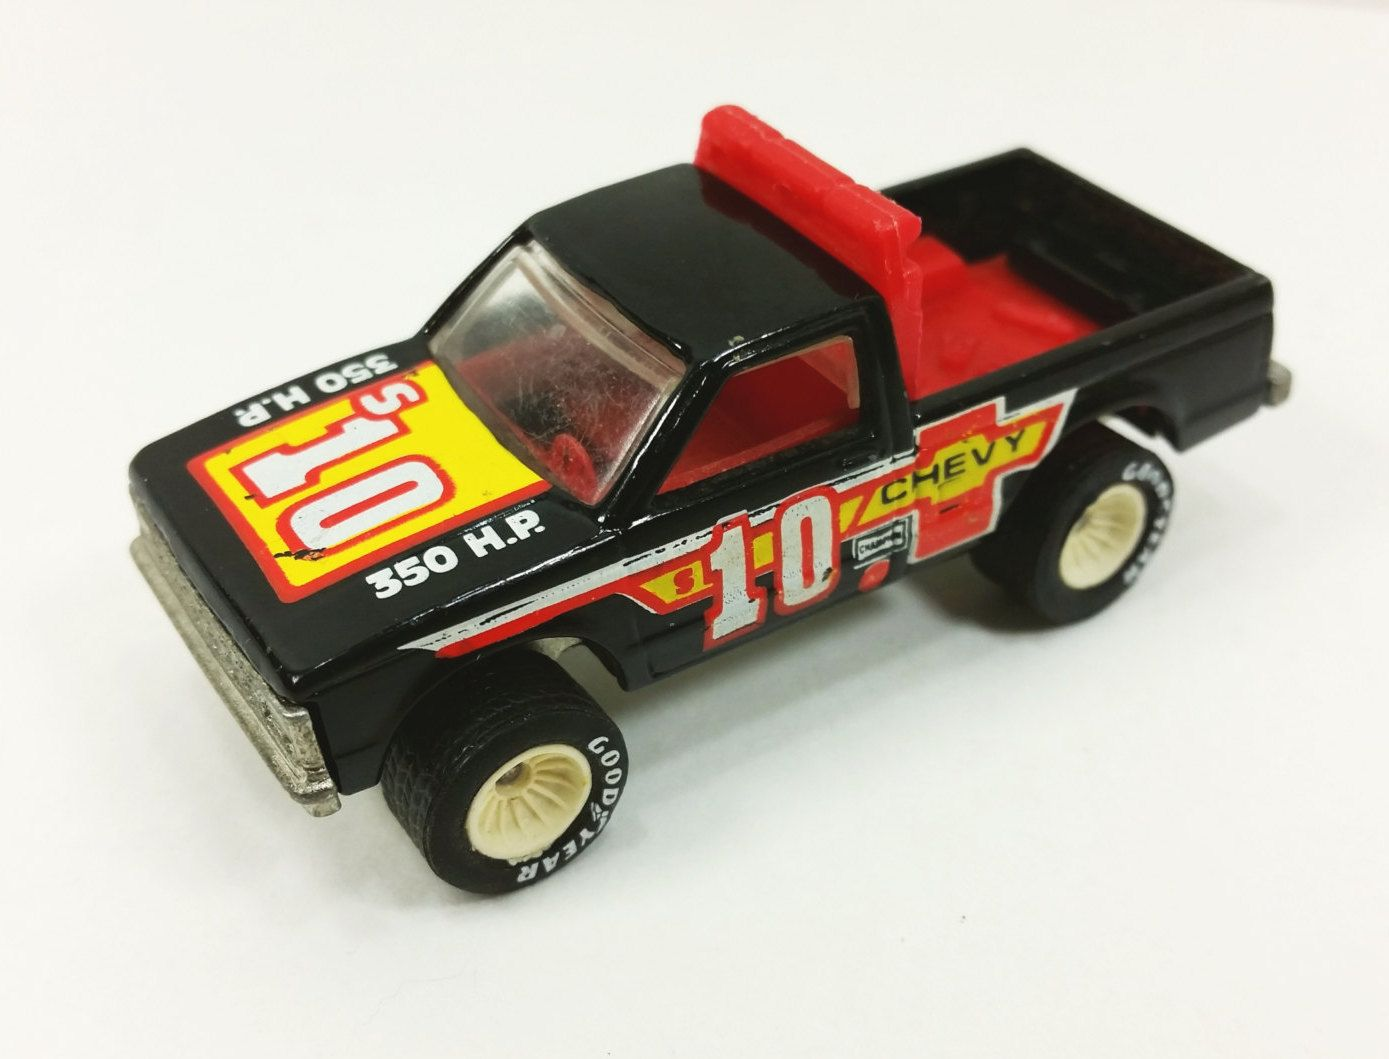 Hot Wheels Path Beater Goodyear Real Riders, Black and Red Chevy Pickup # 2534 by #naturegirl22 on Etsy